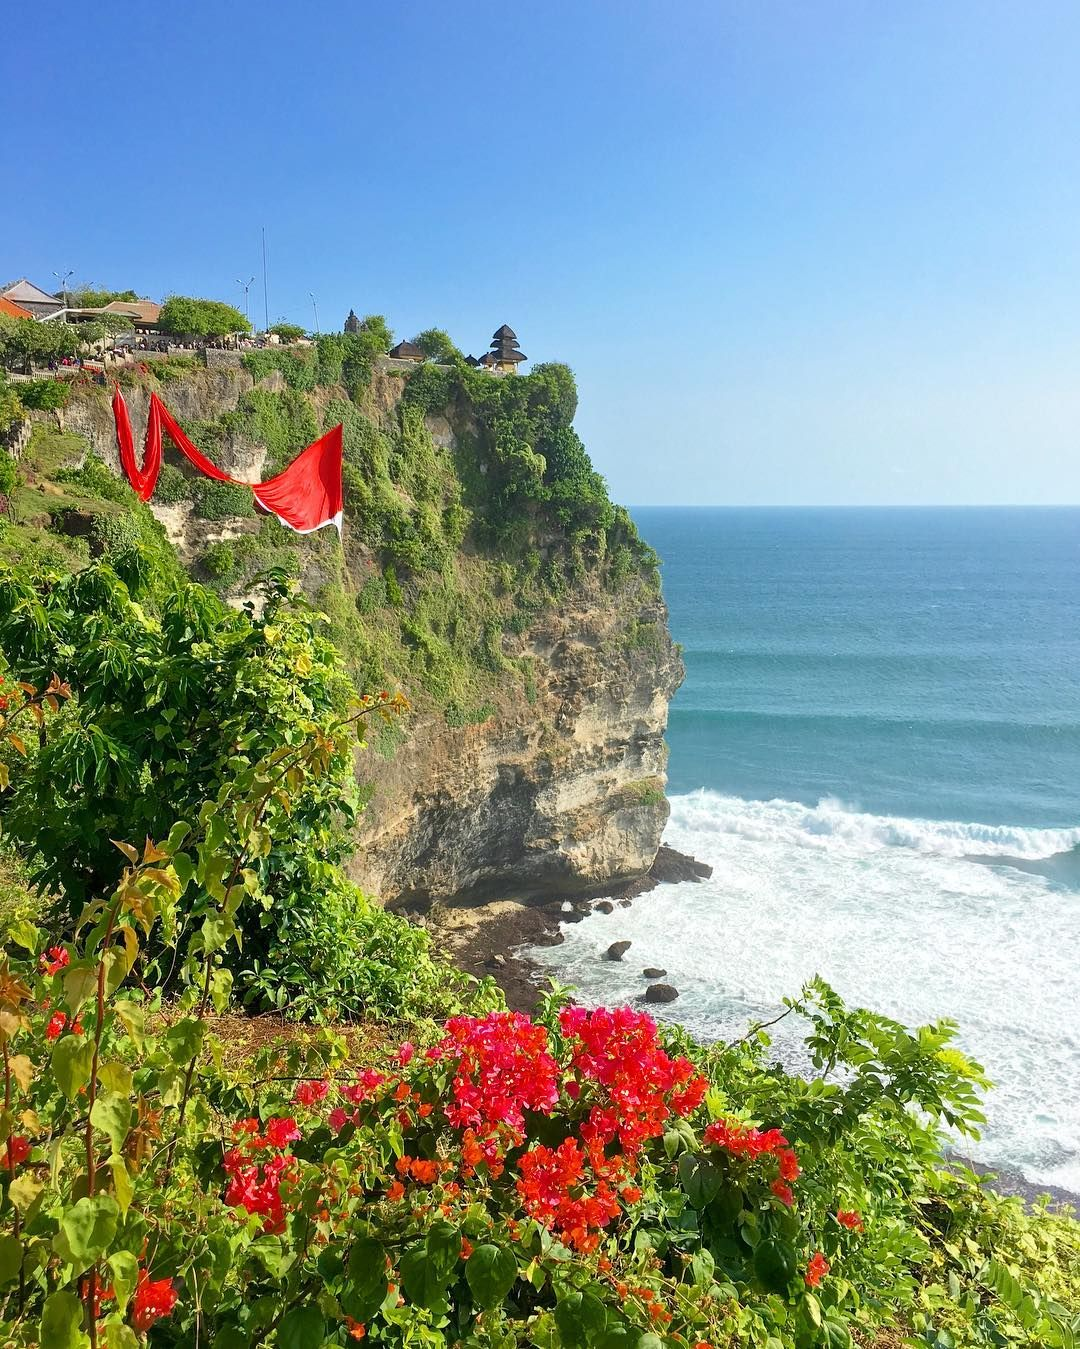 Uluwatu Temple Bali Located On The Edge Of A Cliff High Above The - Where is bali located